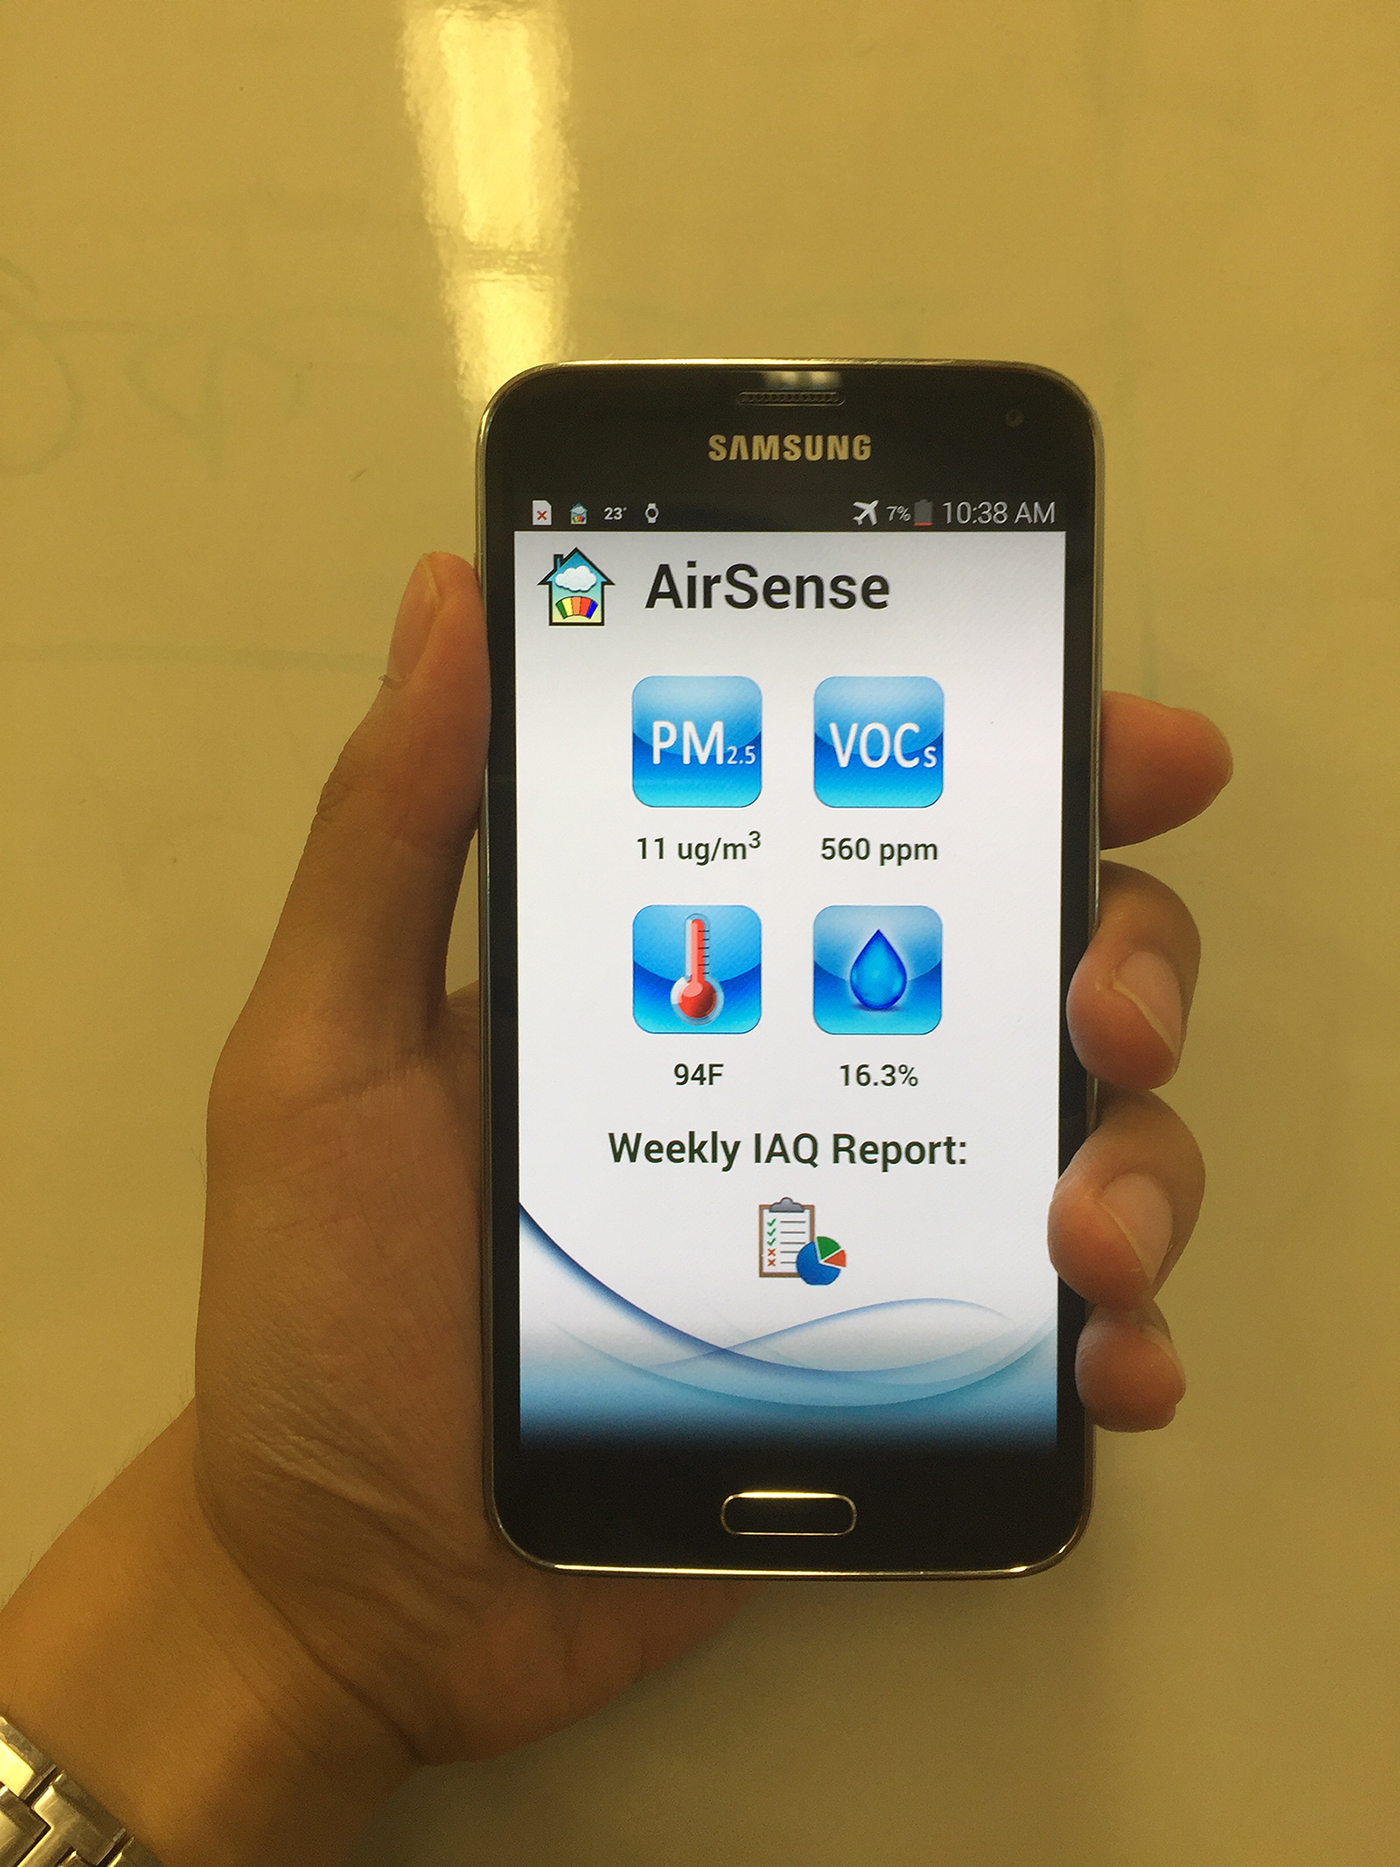 AirSense interface